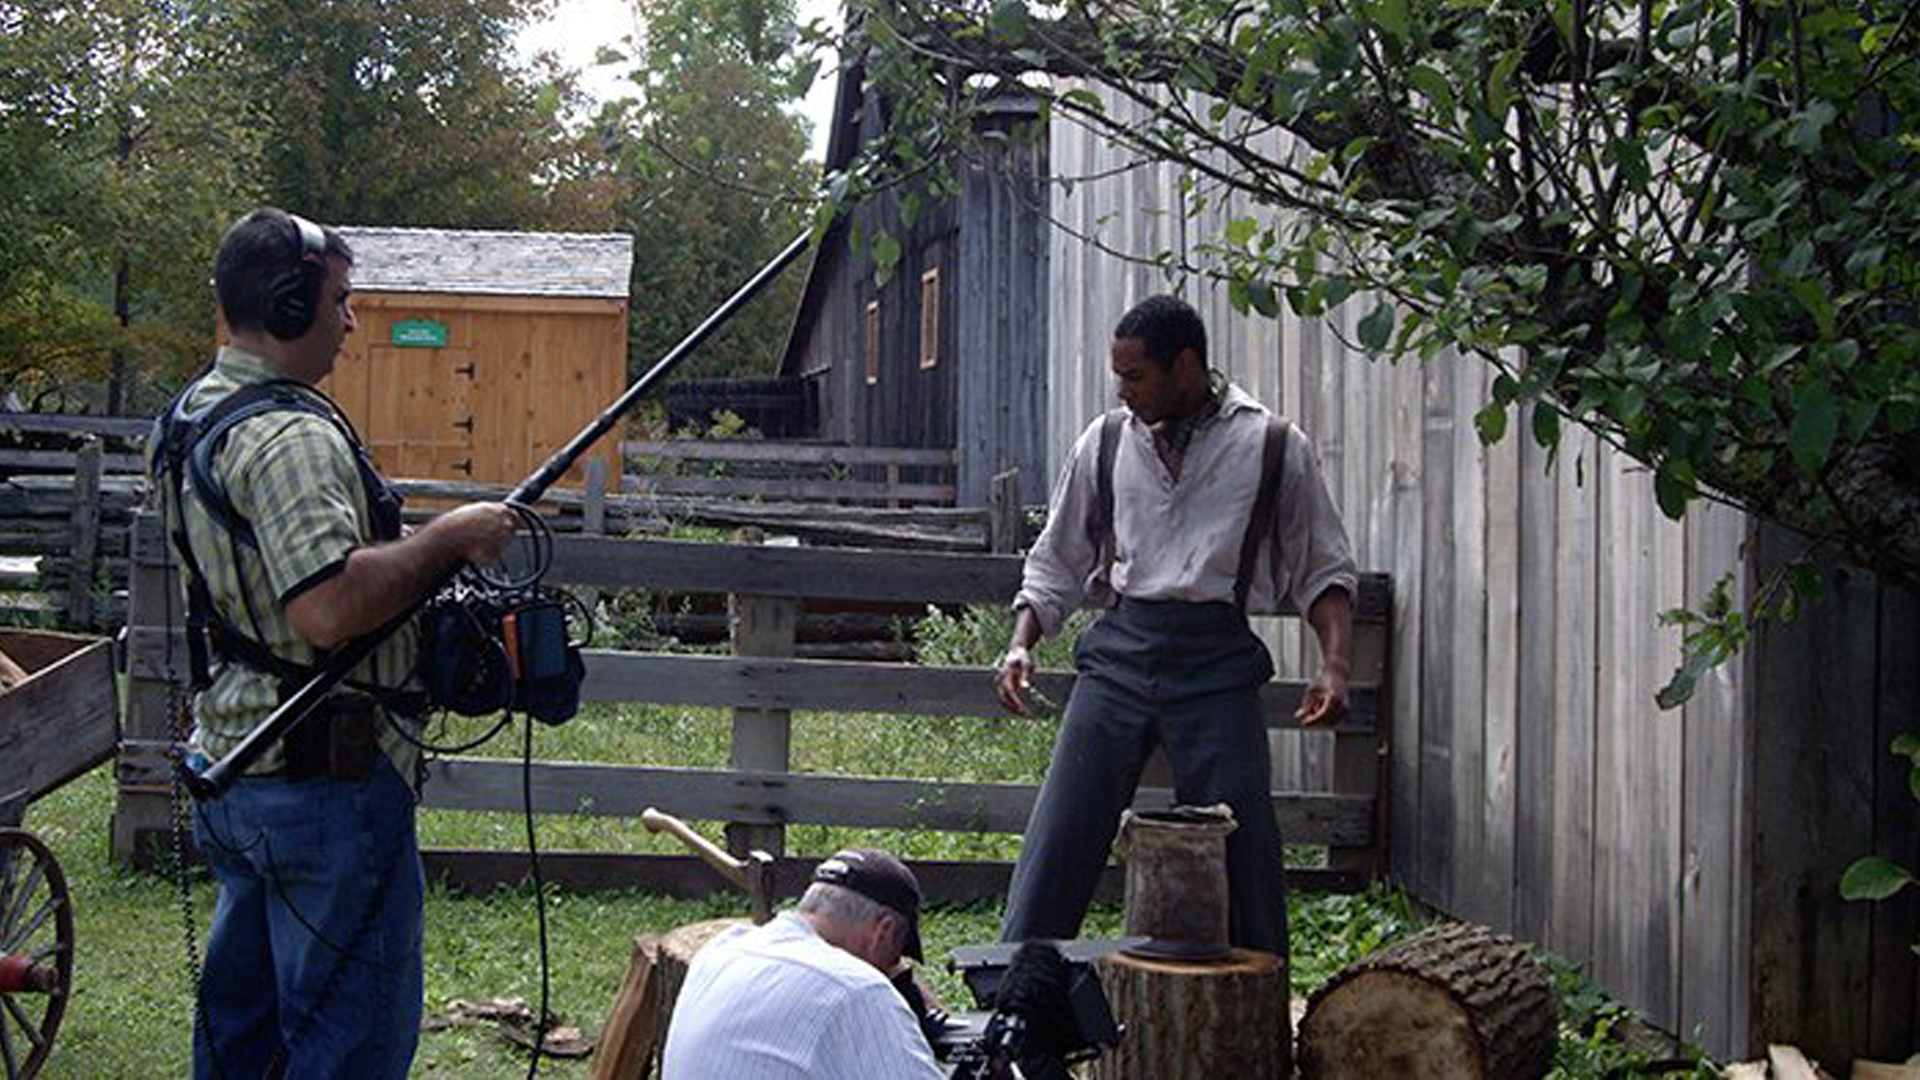 Crew captures a scene for Underground Railroad: The William Still Story.